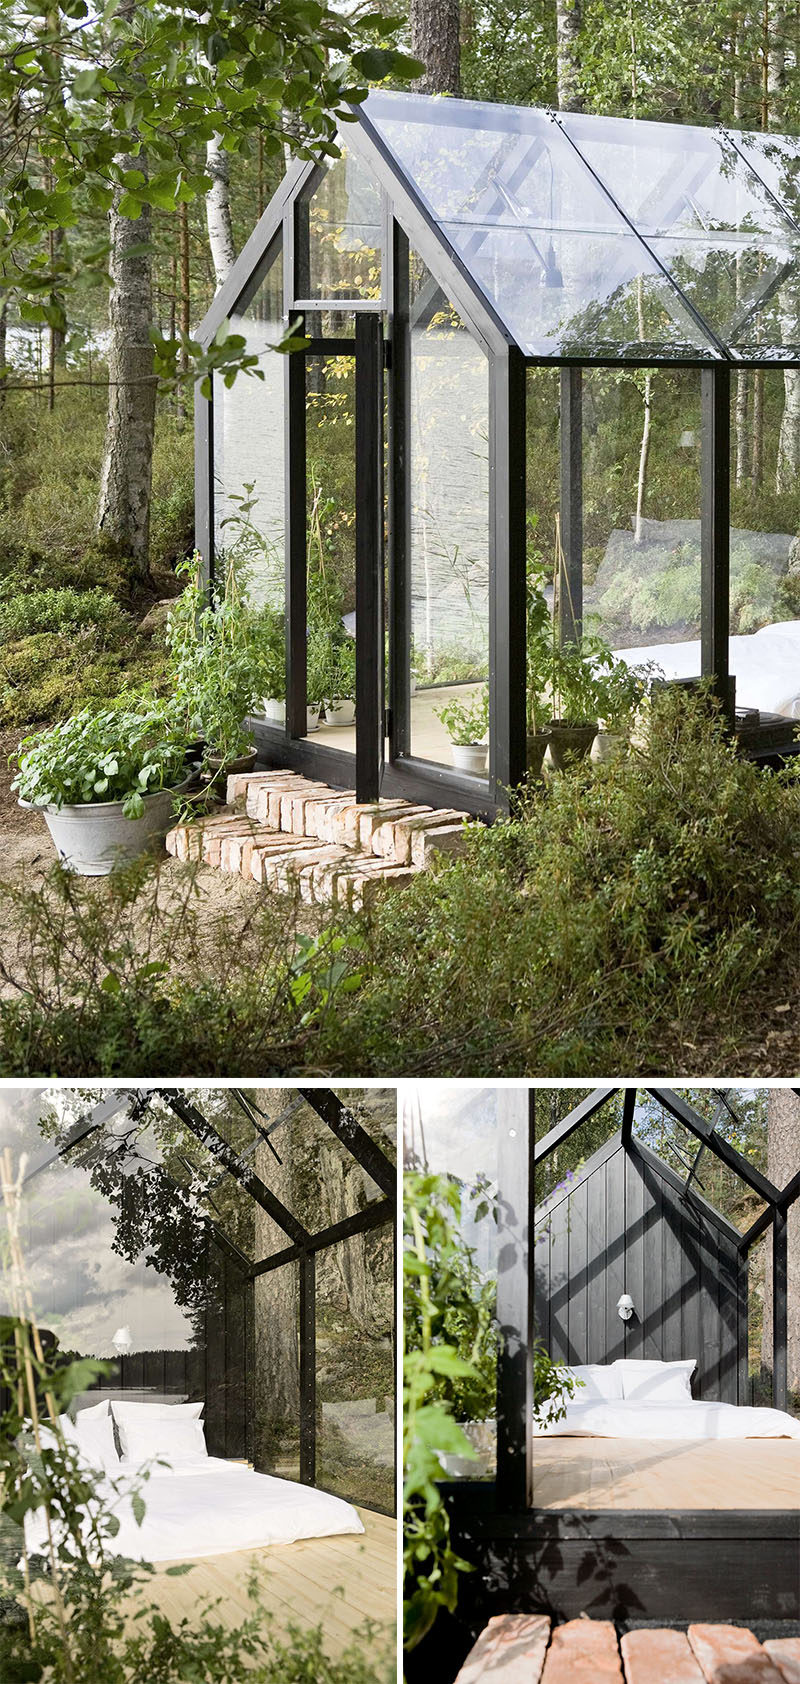 Ville Hara of Avanto Architects, together with Linda Bergroth, designed this modular greenhouse with shed that can be used as a bright garden oasis.